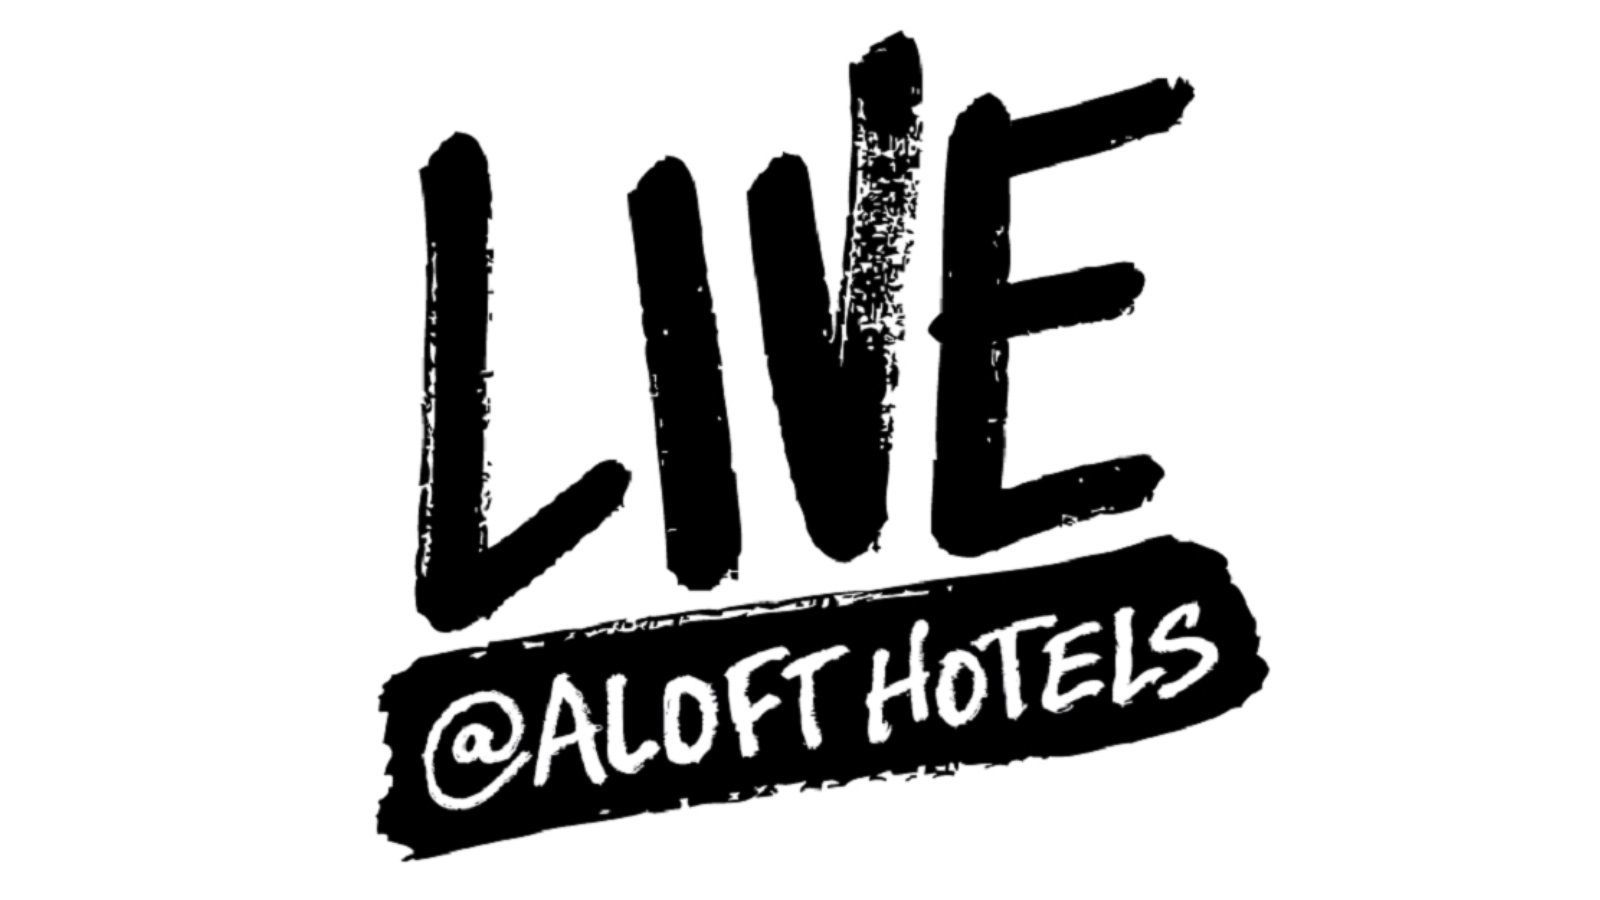 Durham Bar - Live At Aloft Hotels